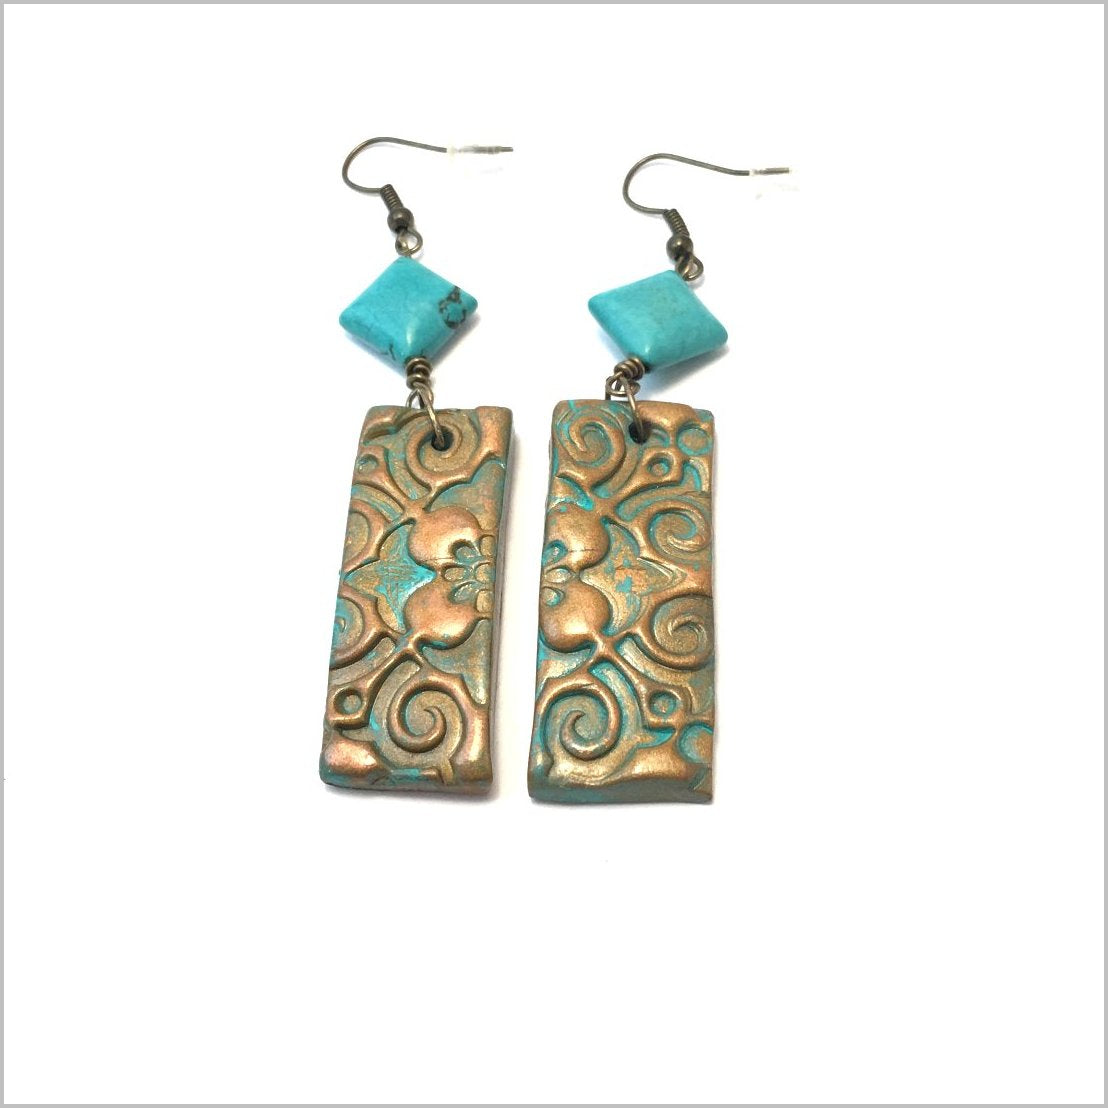 Earrings. Handmade Mix media  Polymer Clay Earrings with turquoise beads. Beautiful hand made pair earrings. Dangle earrings always in style design